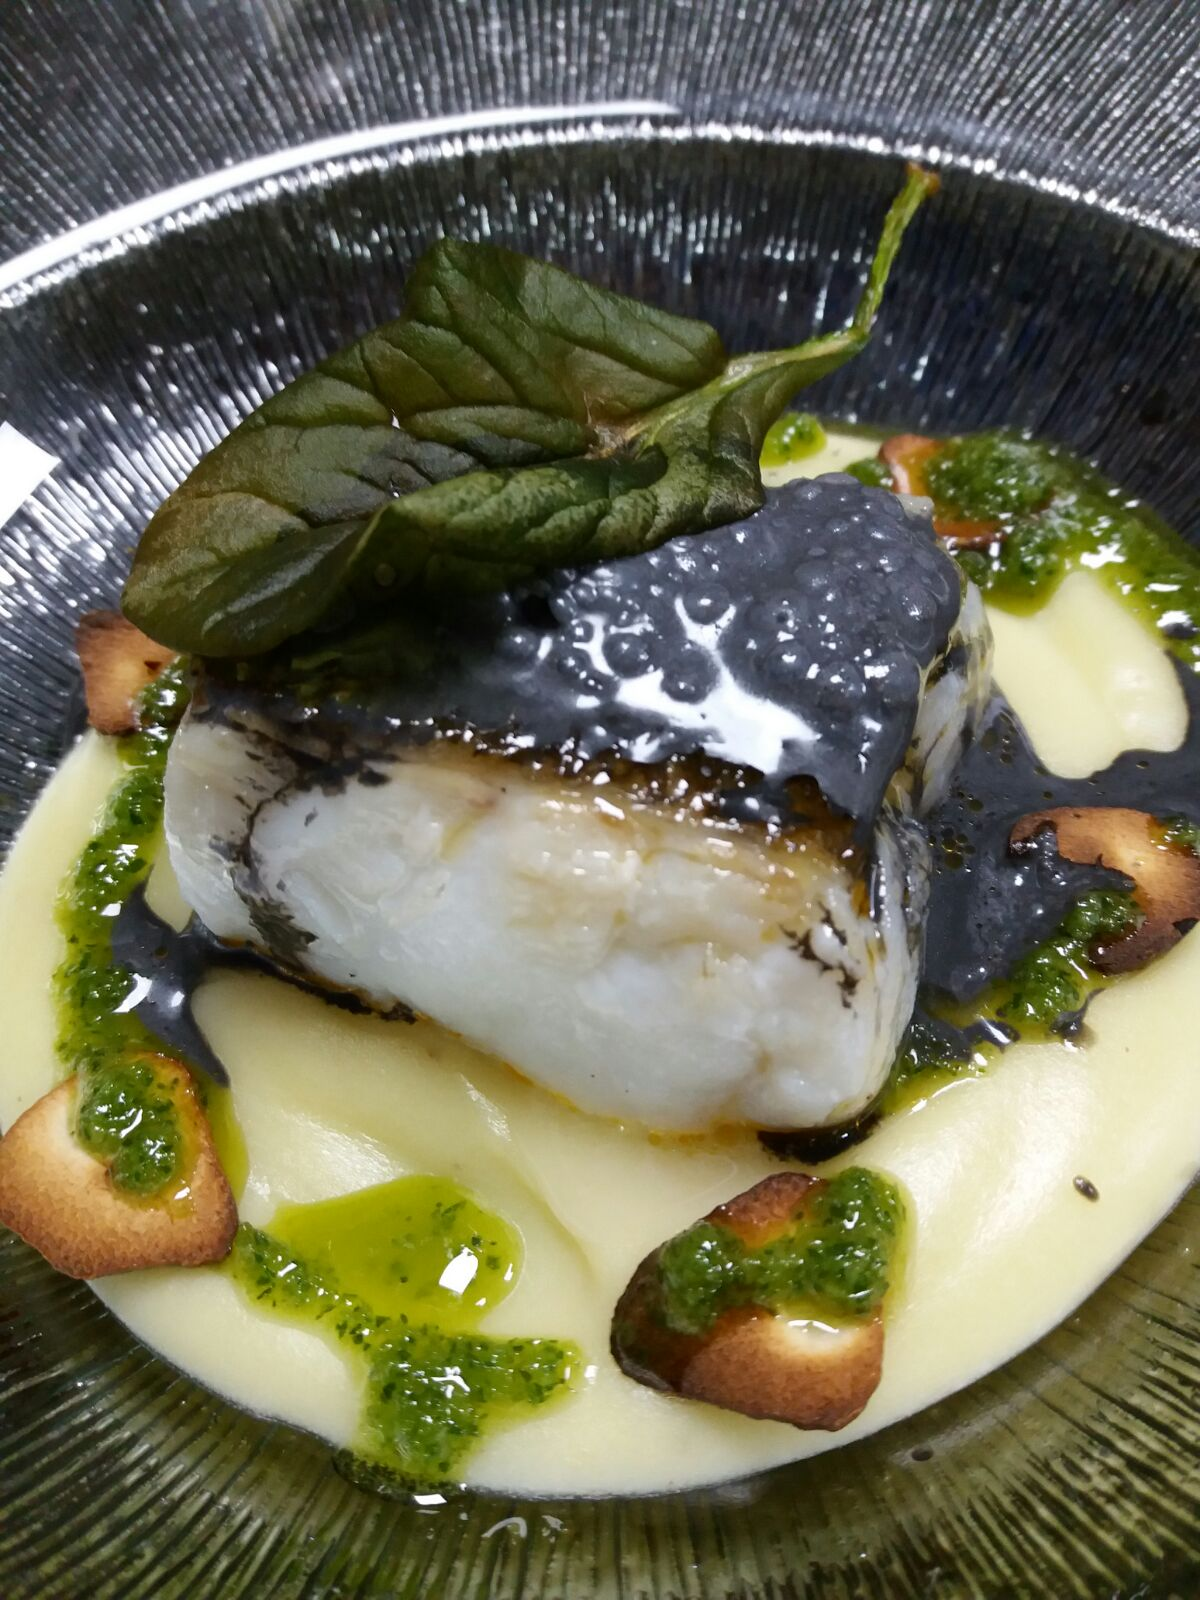 cod with black pudding at Eboka restaurant